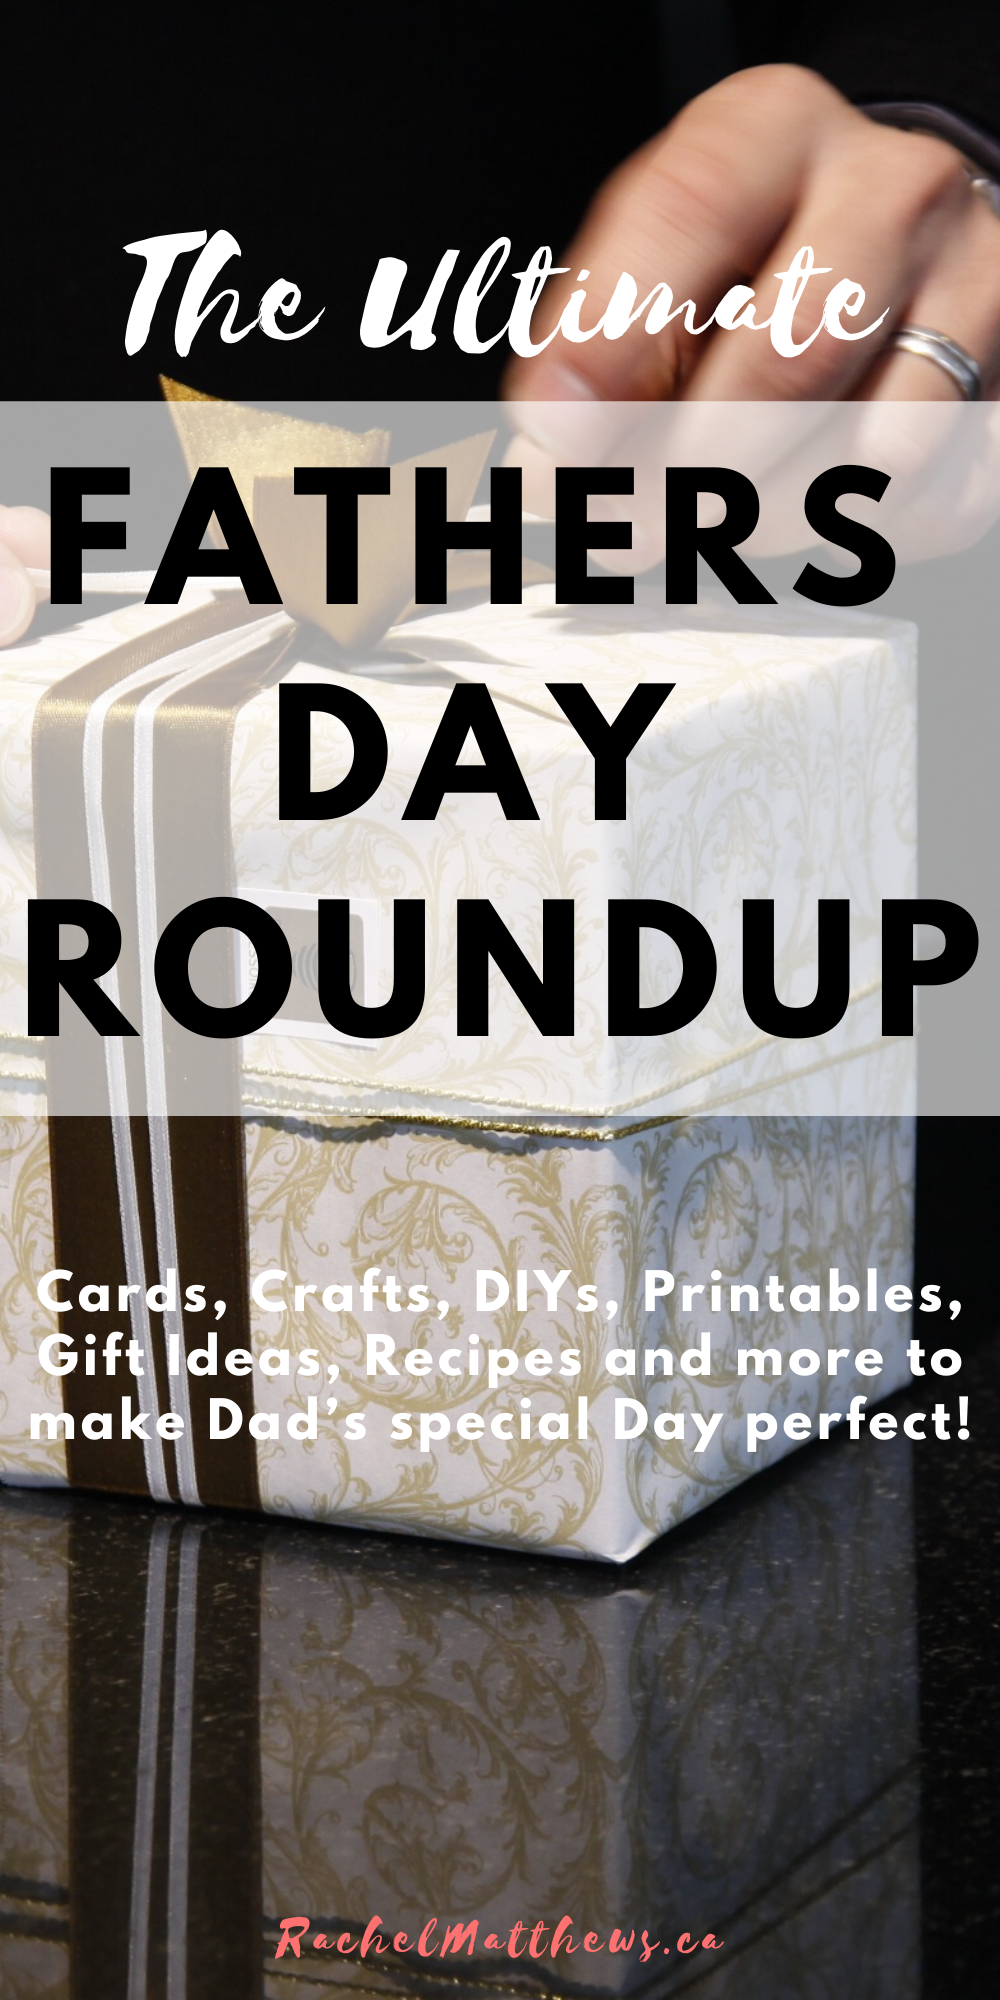 The ultimate father's day roundup! Cards, crafts, DIY's, printables, gifts, and recipes for dads special day.